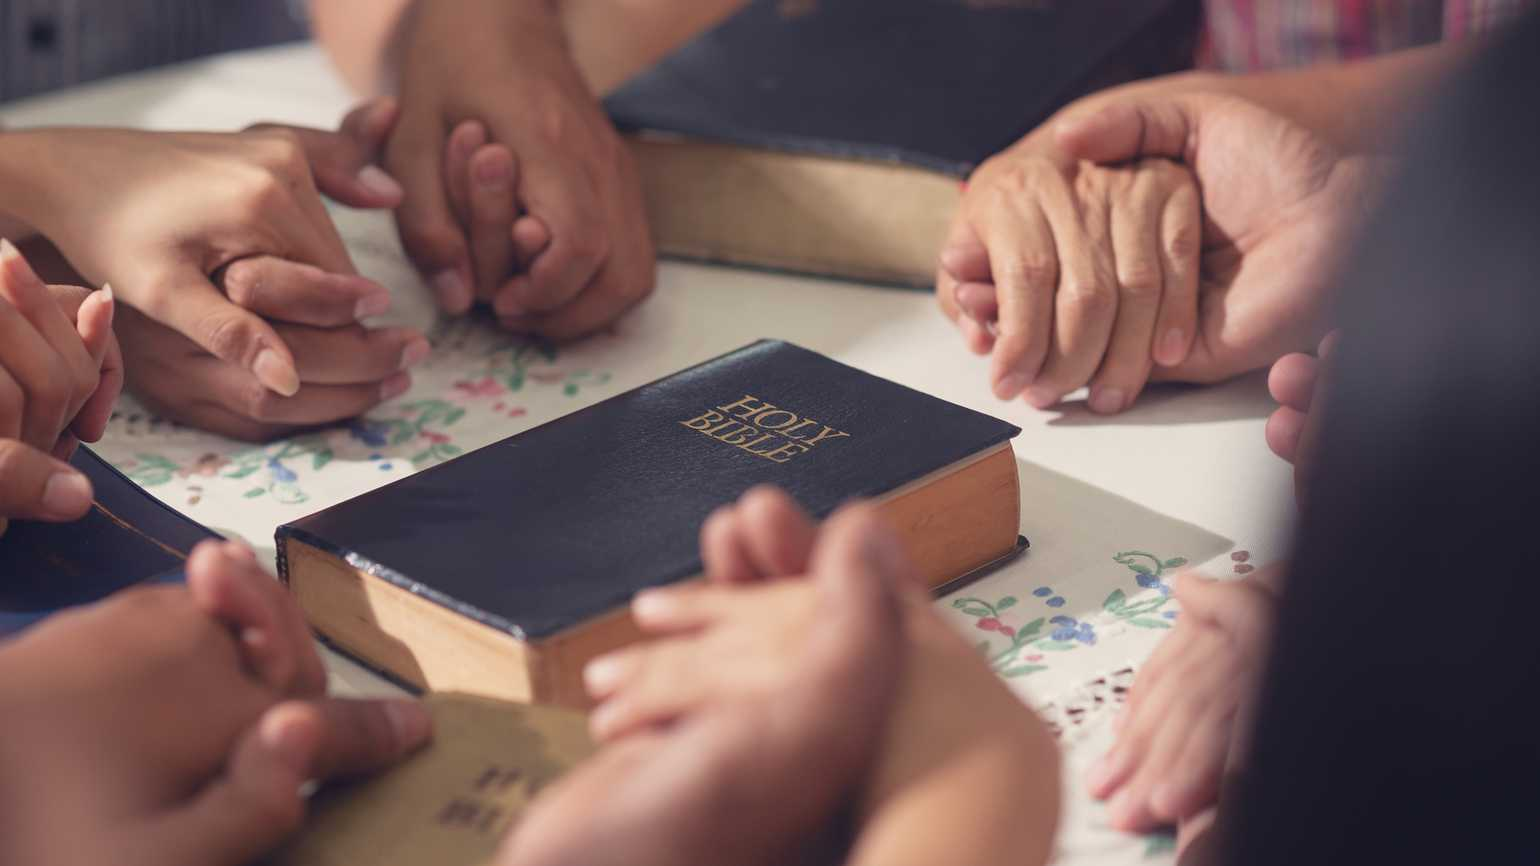 A Bible study group holding hands as a Bible rests in the center of the table.